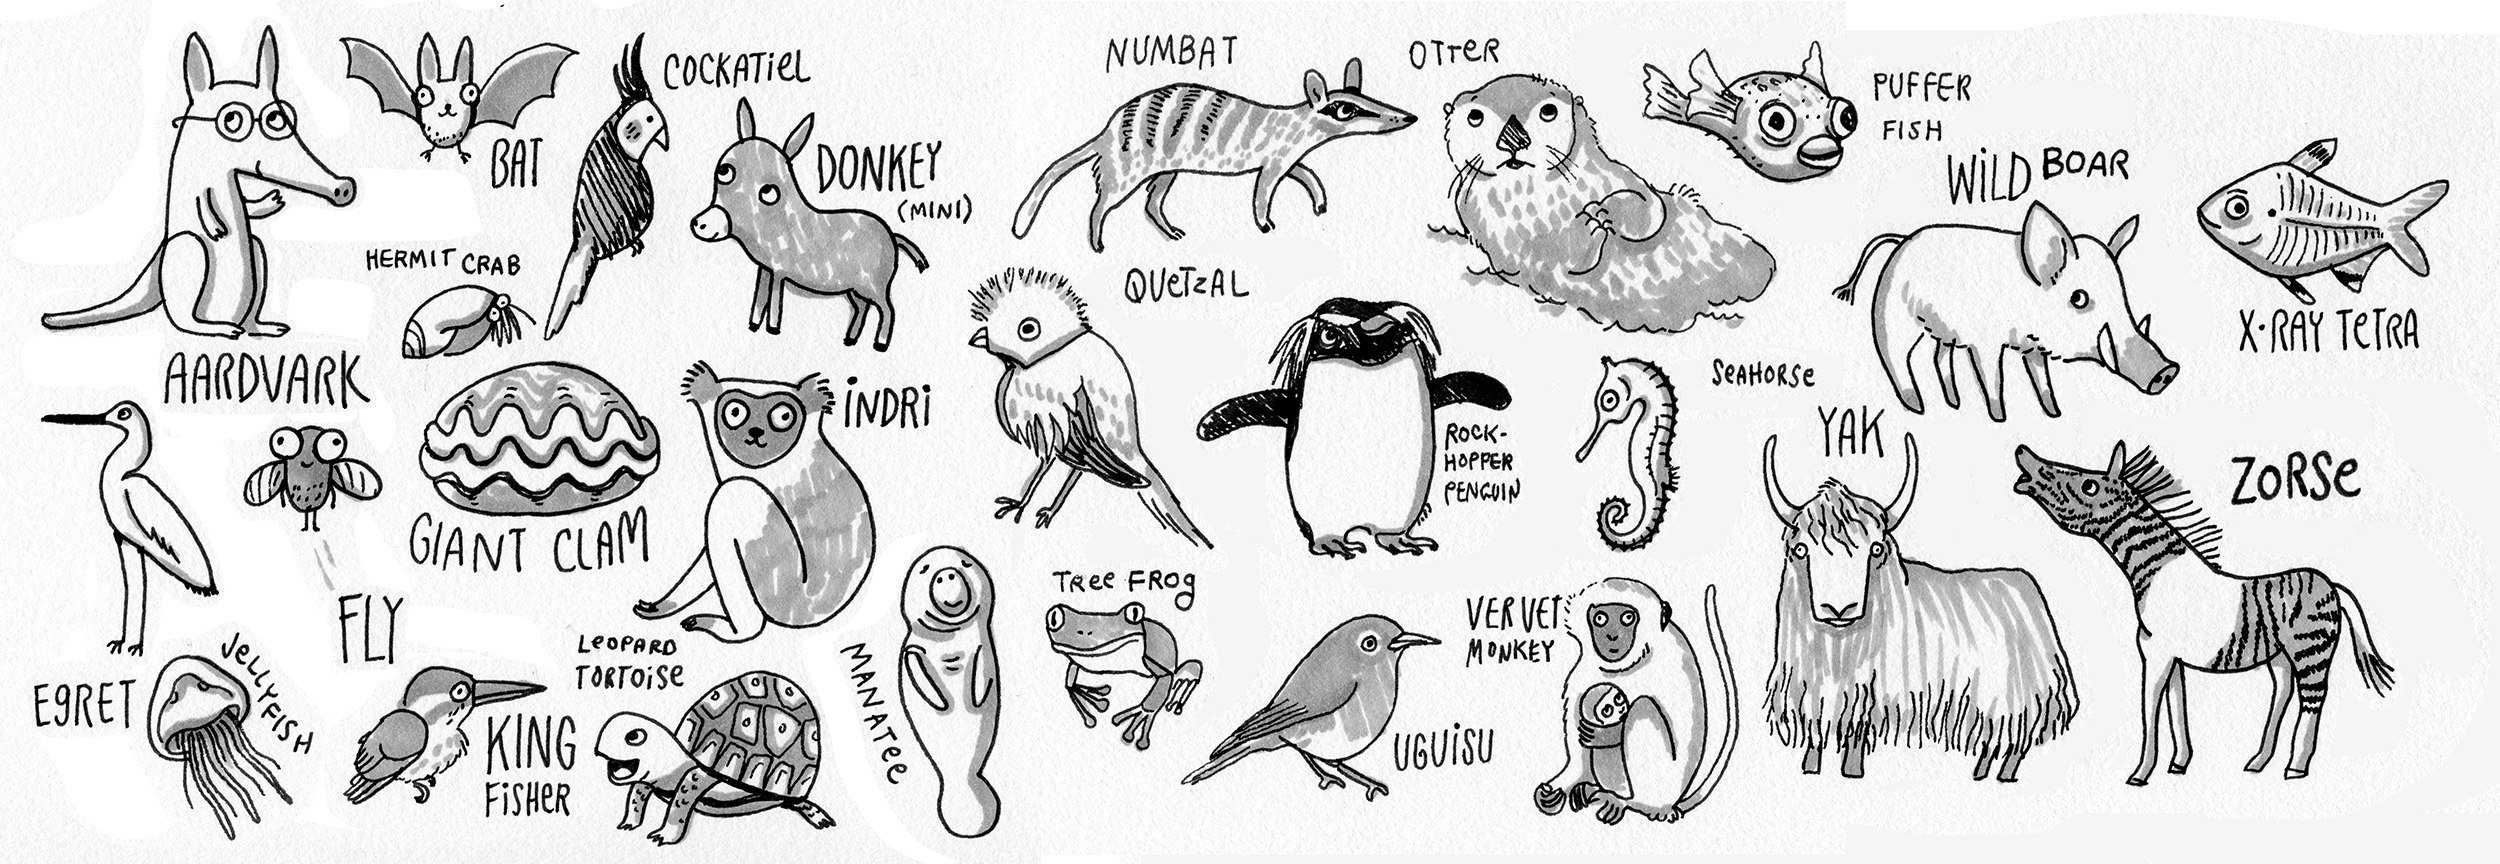 Odd Animals A to Z